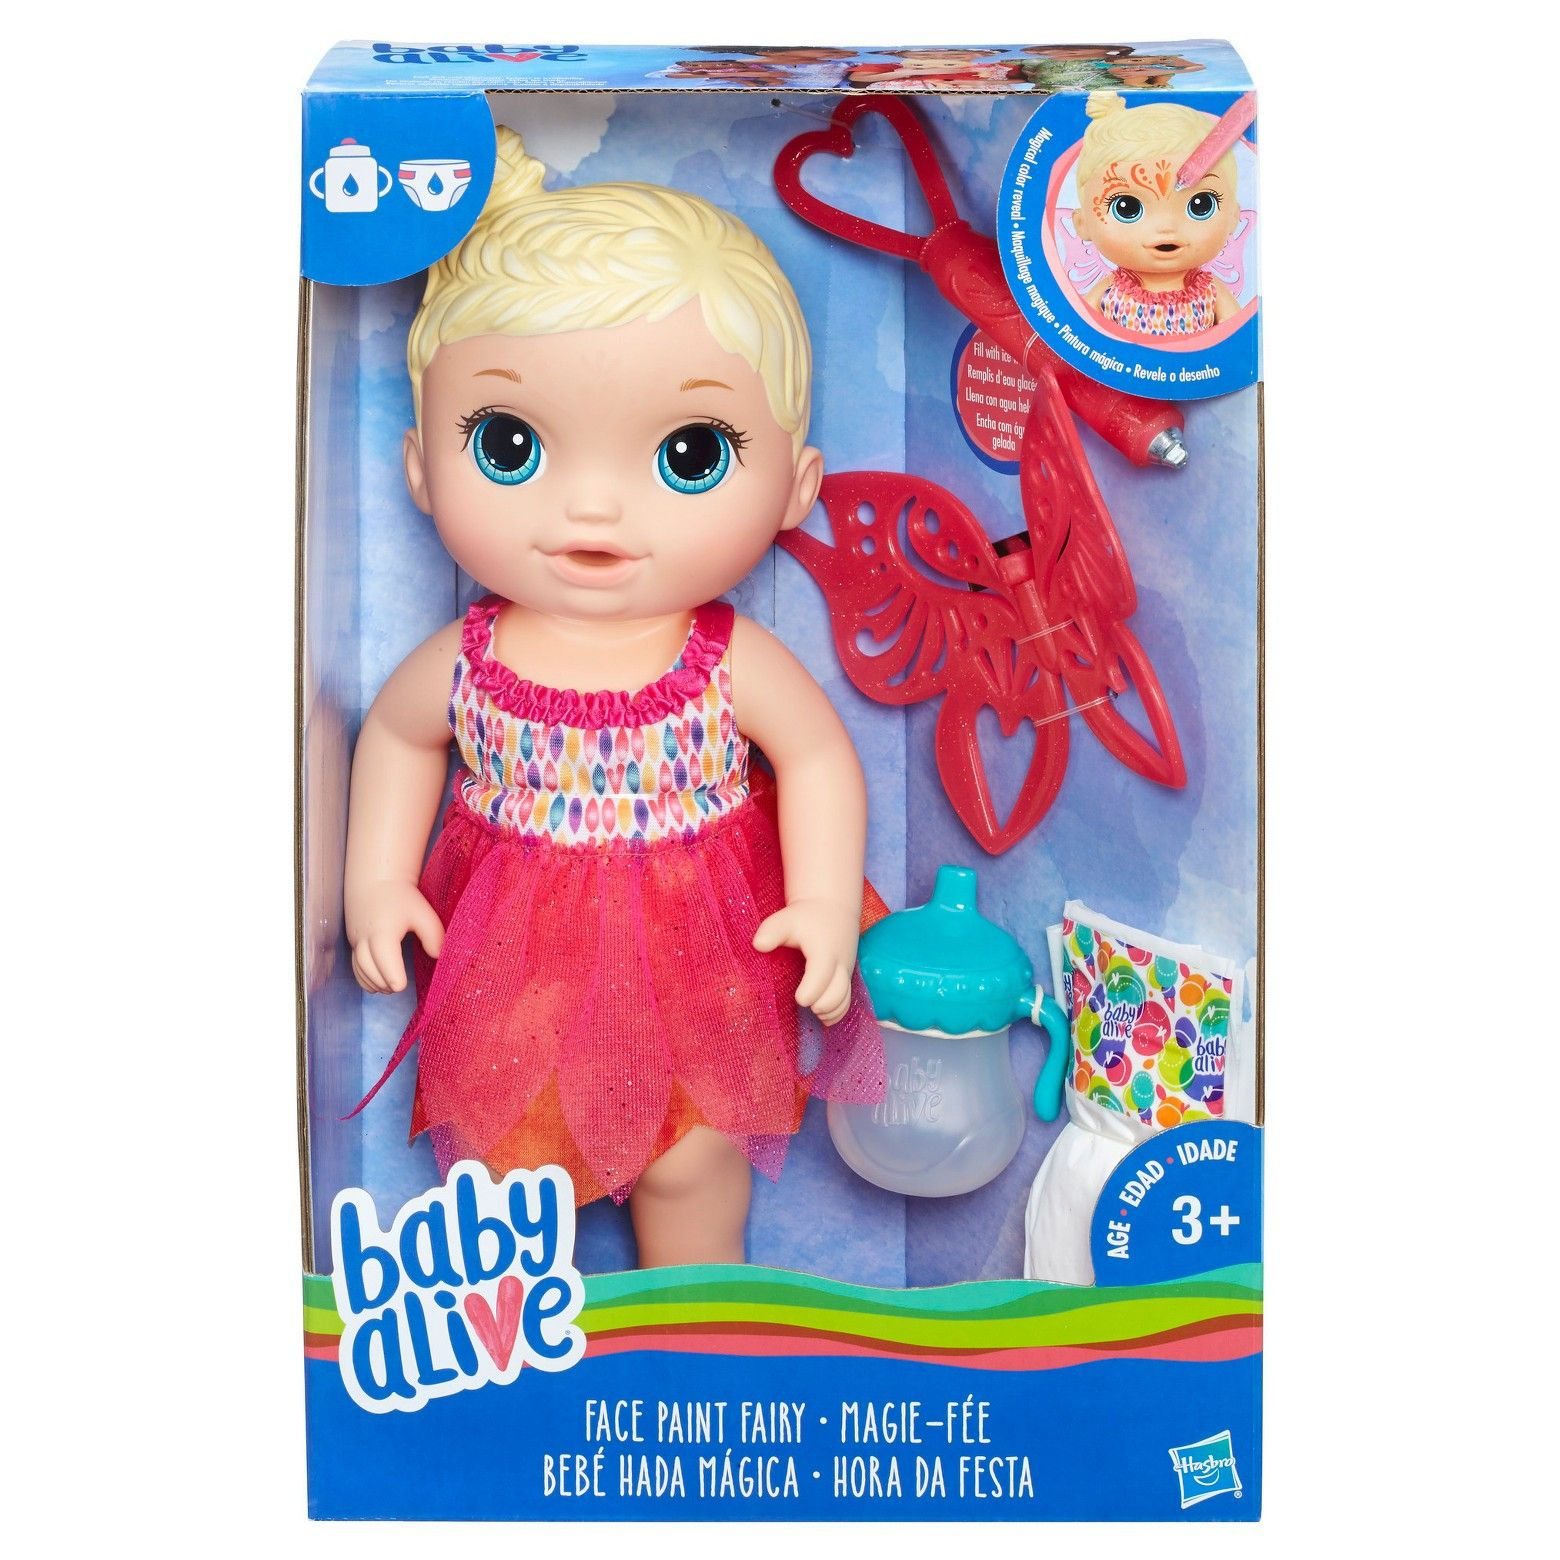 Baby Alive Face Paint Fairy Blonde Target Baby alive